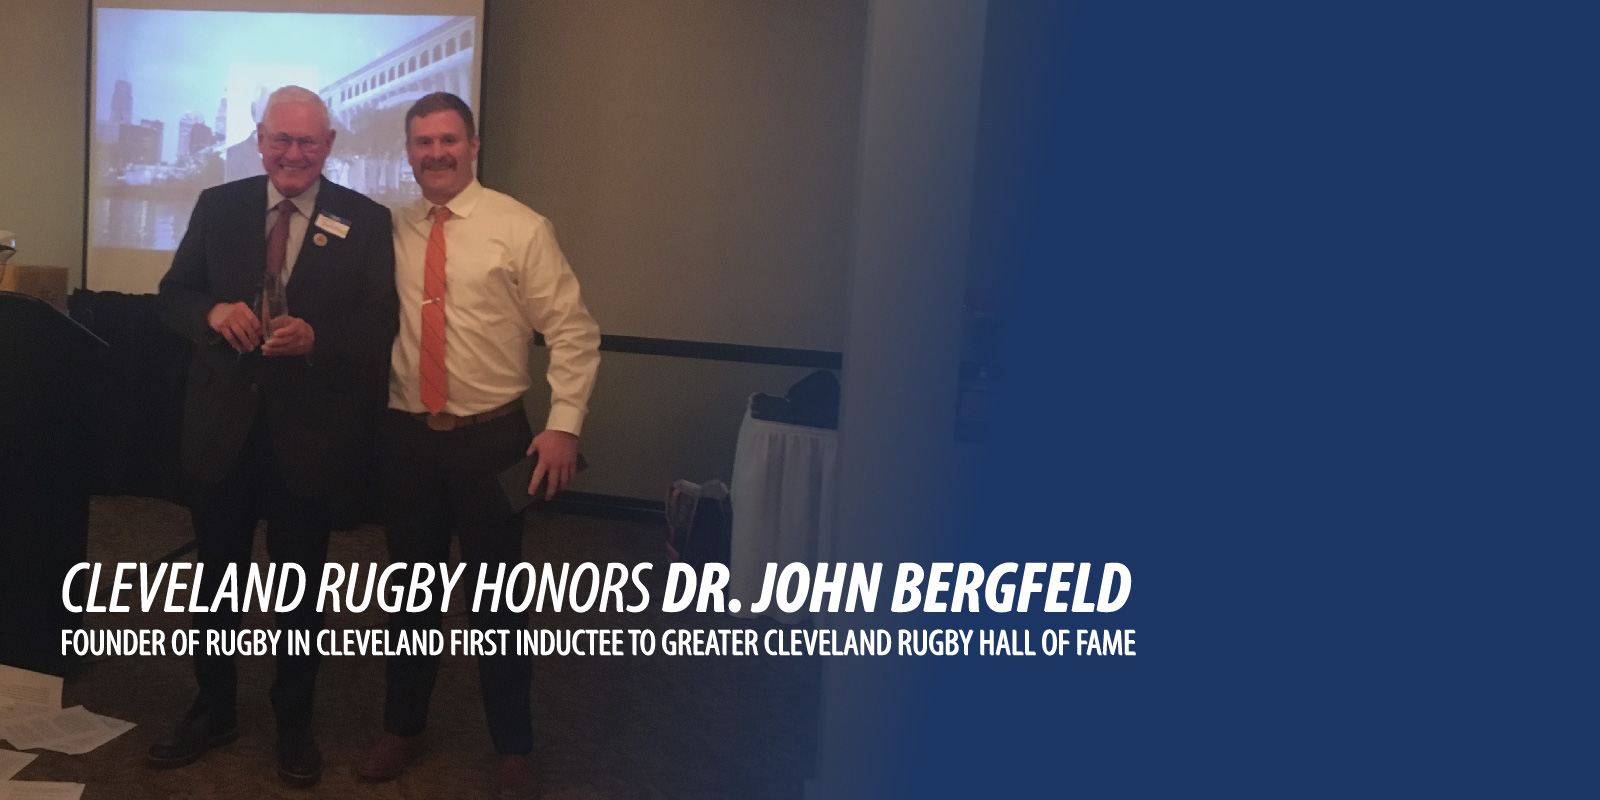 Cleveland Rugby Honors